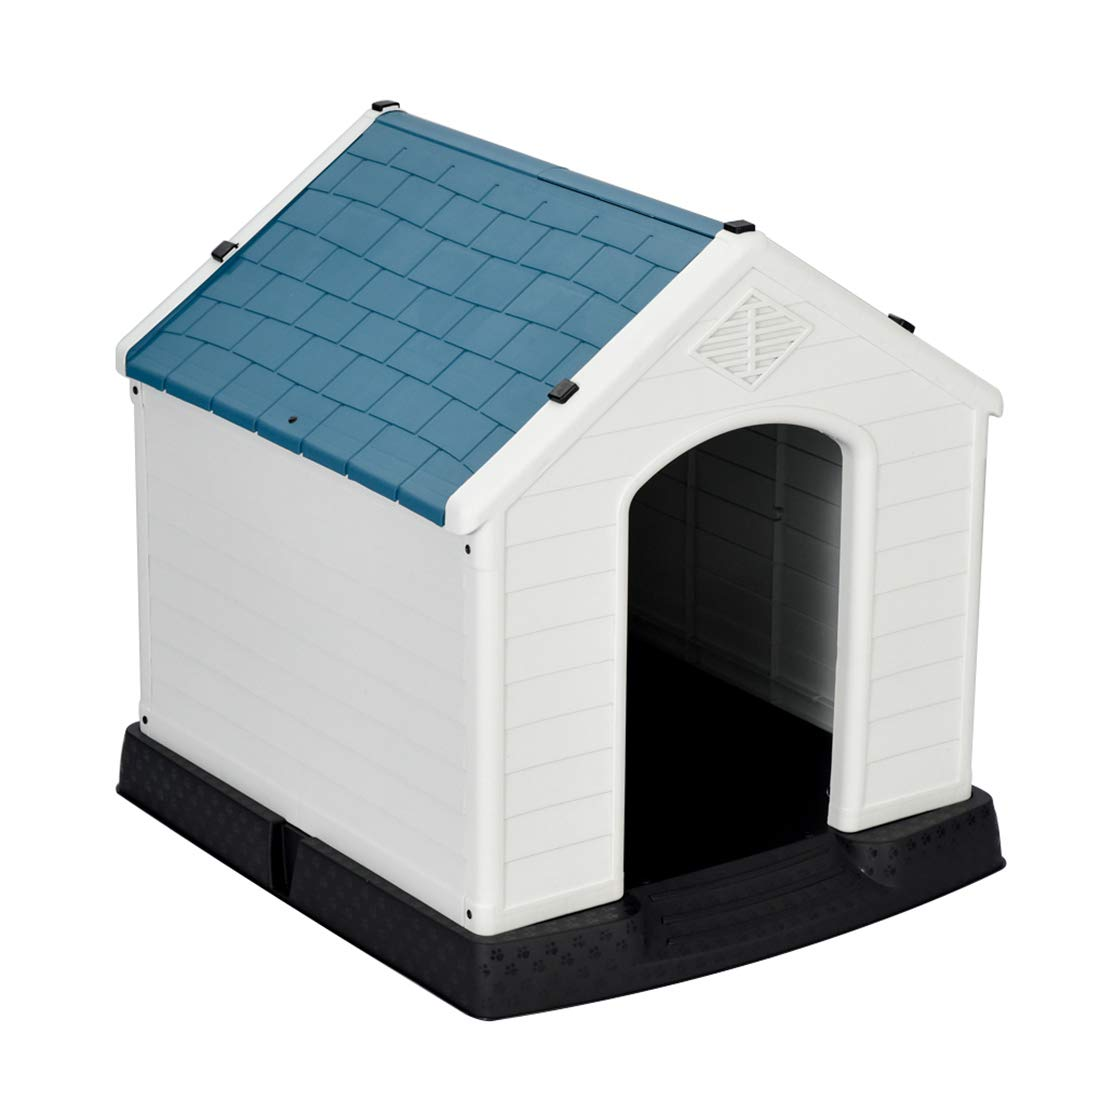 Good Life Outdoor Indoor Waterproof Plastic Dog House for Small Medium Large Dogs Outdoor Winter Pet Dog House Kennel Ventilate Blue White Color